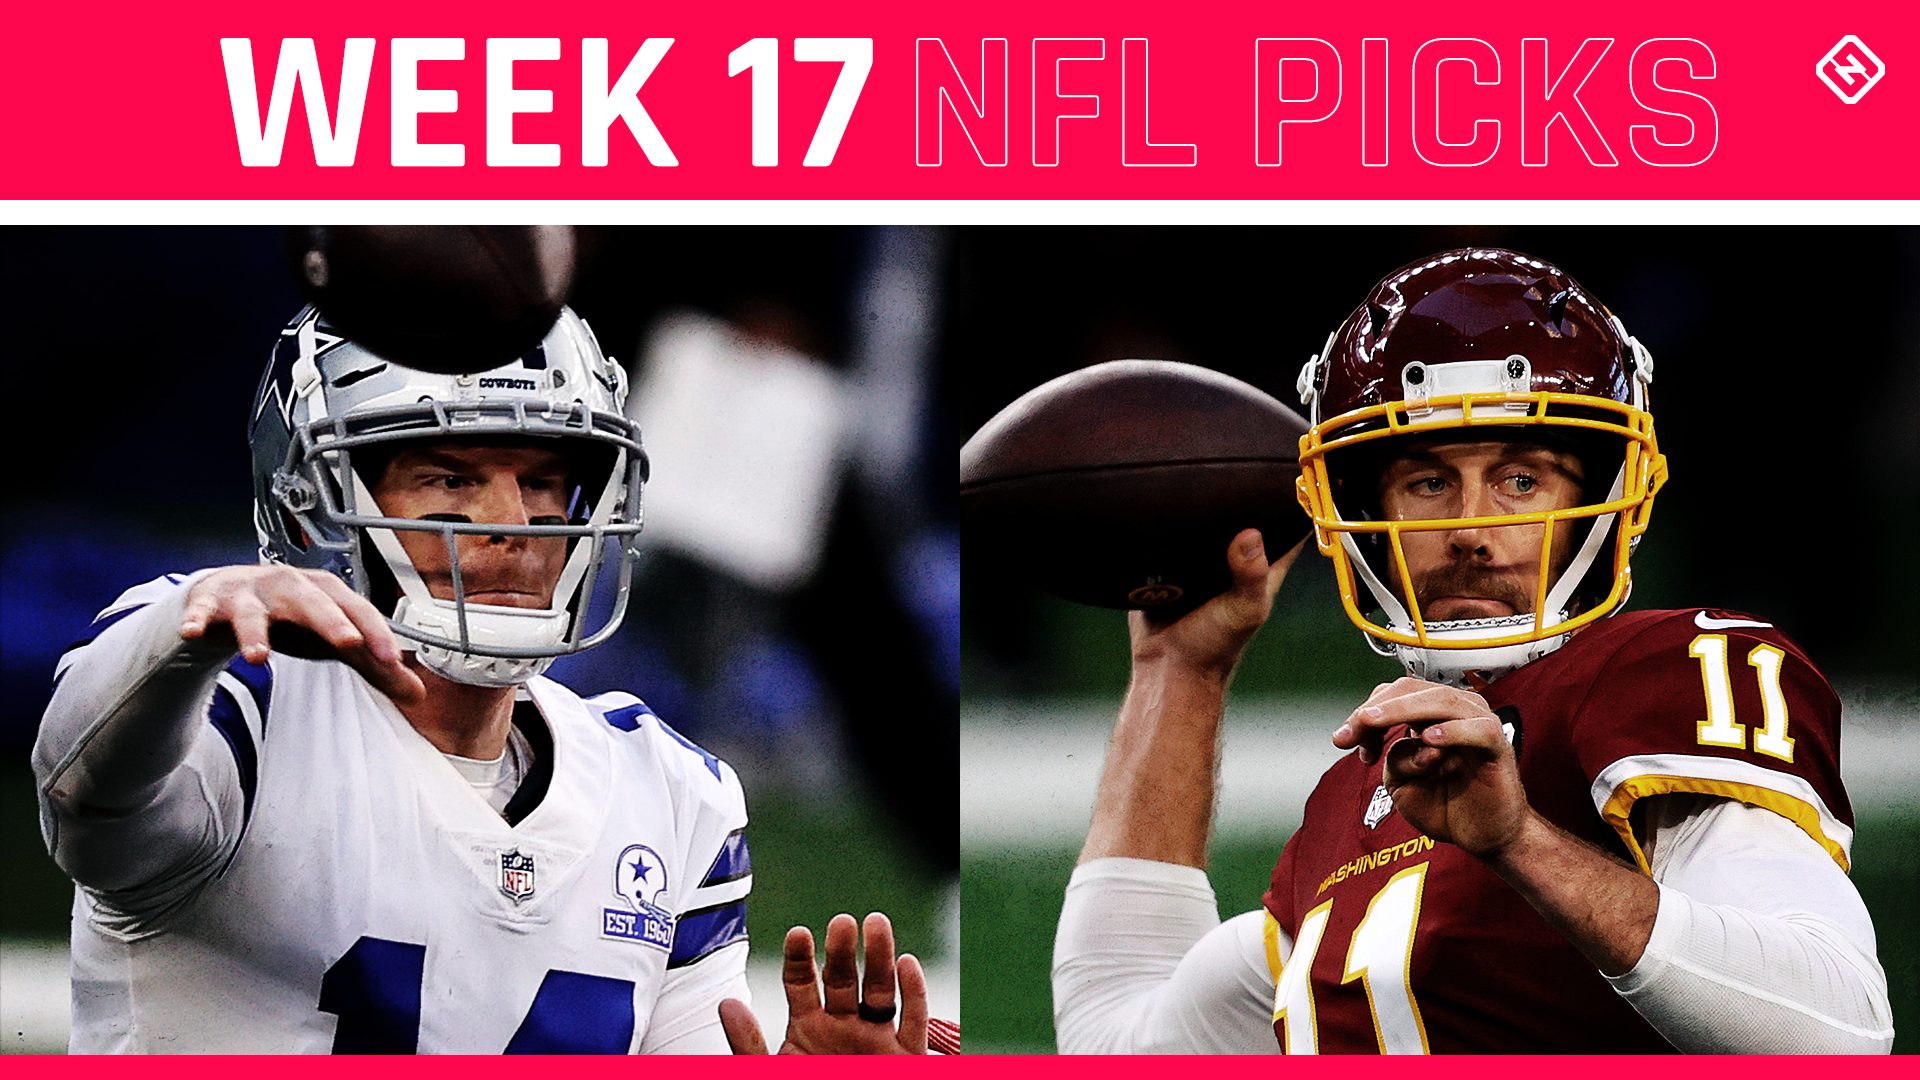 Nfl Picks Predictions Against Spread Week 17 Eagles Help Cowboys Clinch Playoffs Over Washington Bills Dump Dolphins Sporting News